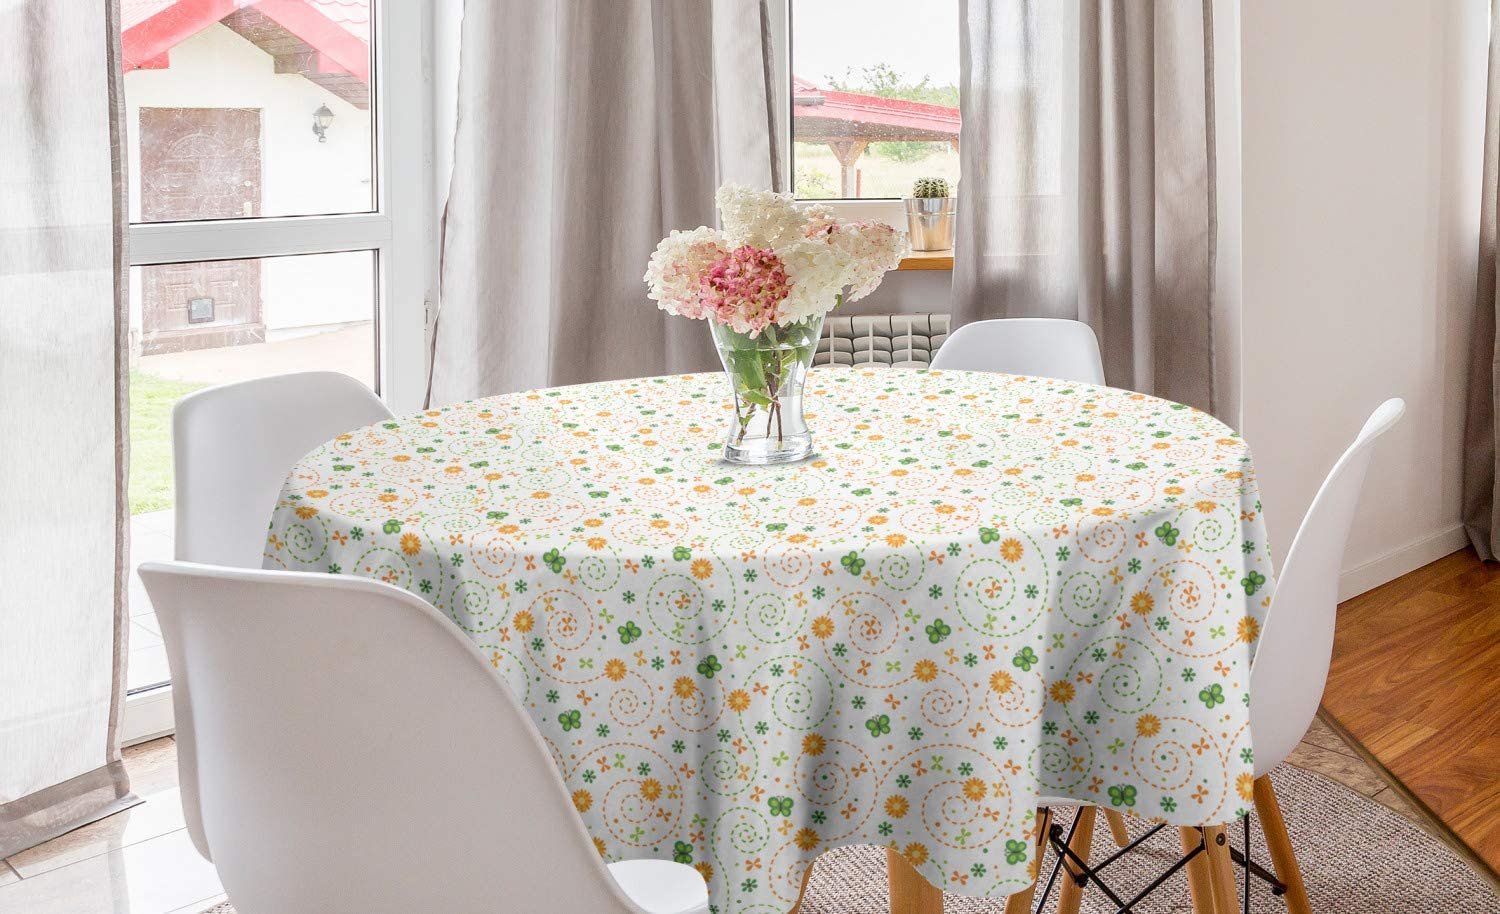 Lunarable Spring Round Tablecloth, Childish Pattern with Butterfly and Flowers, Circle Table Cloth Cover for Dining Room Kitchen Decoration, 60